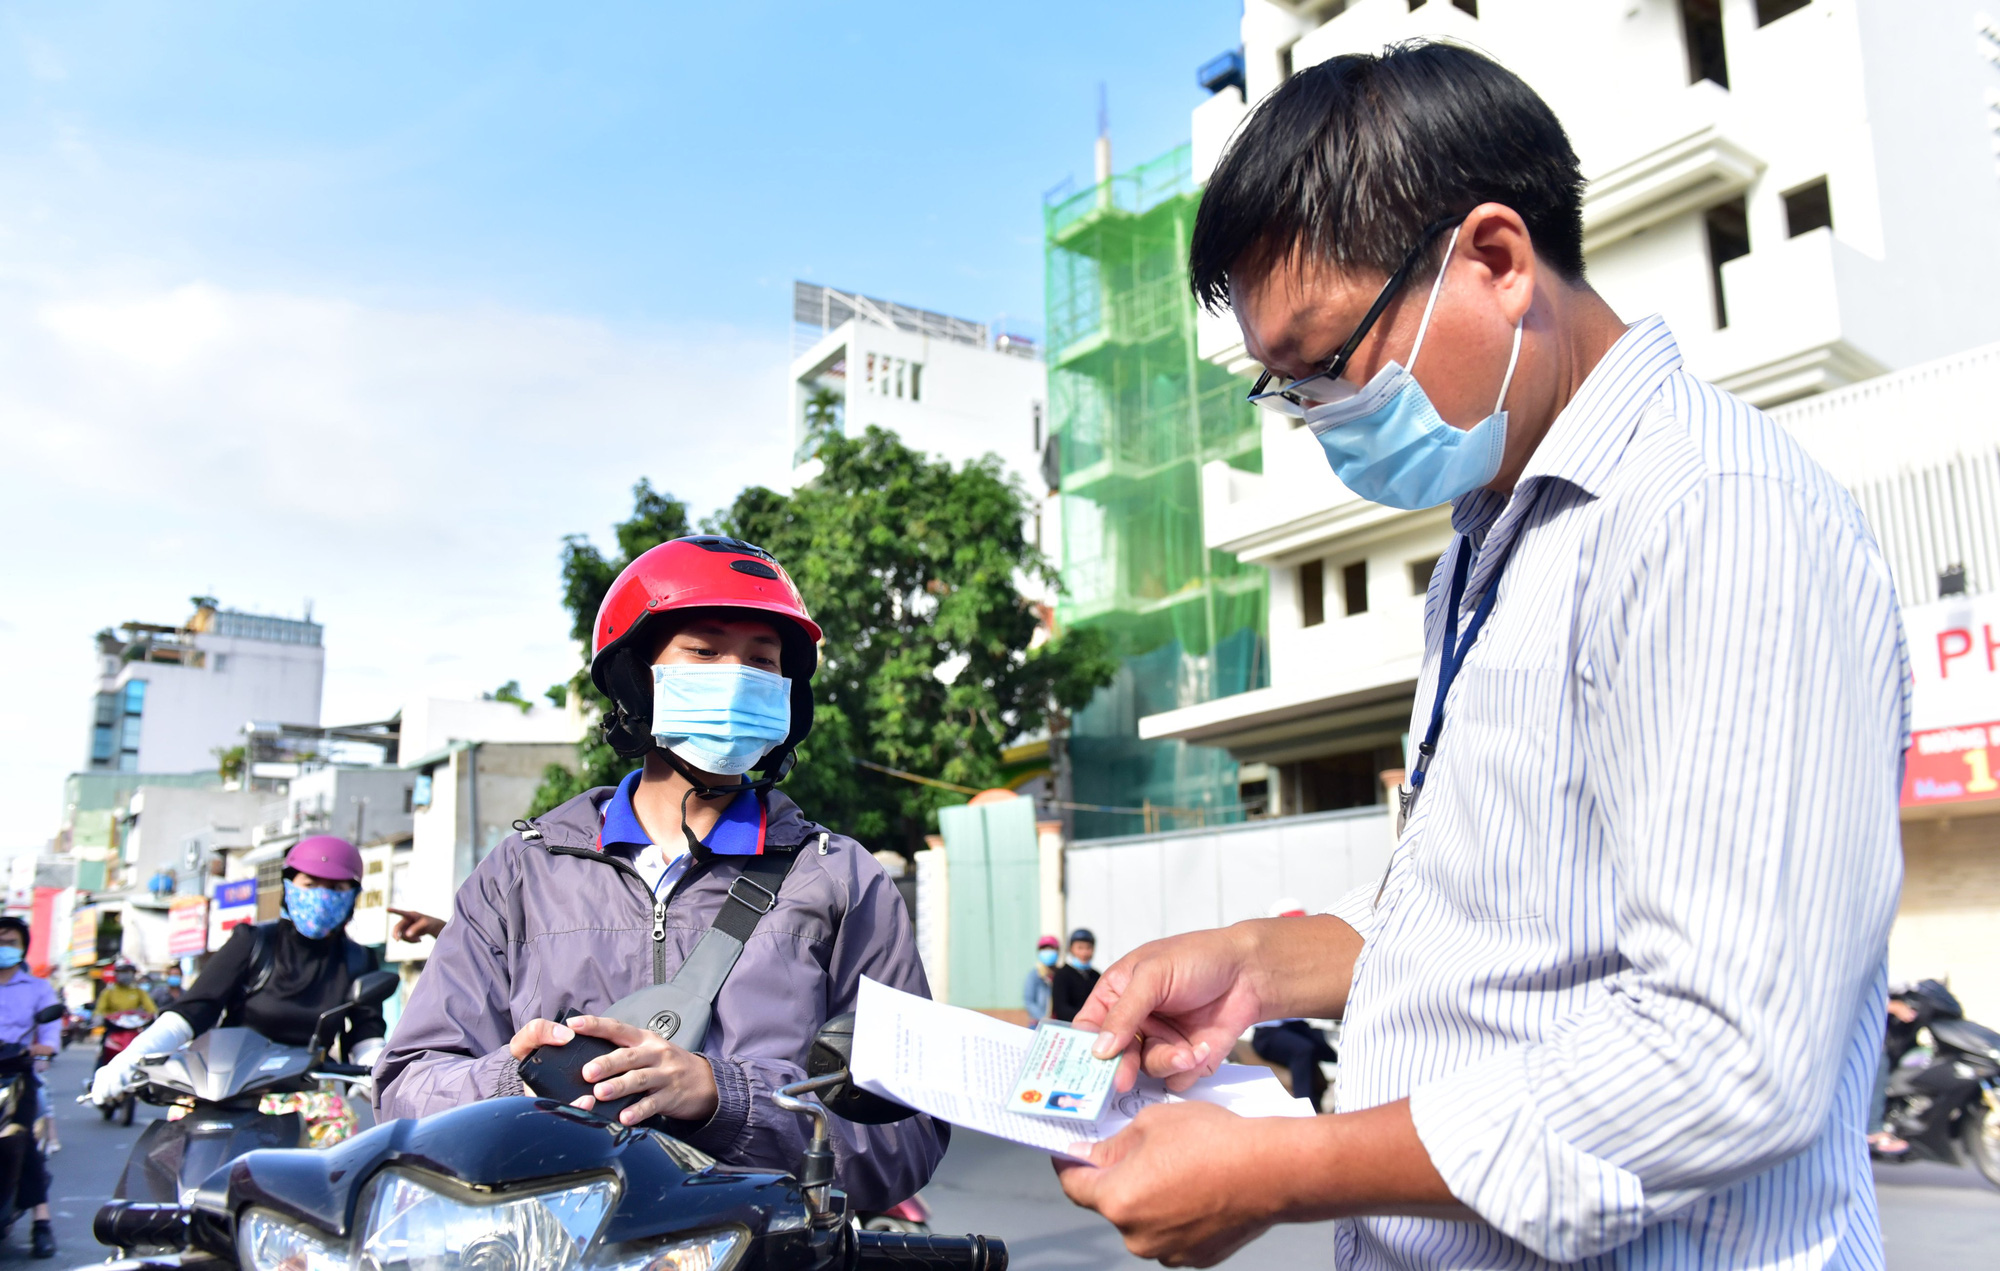 An officer checks personal documents belonging to a commuter on a street in Phu Nhuan District, Ho Chi Minh City, July 9, 2021. Photo: Duyen Phan / Tuoi Tre